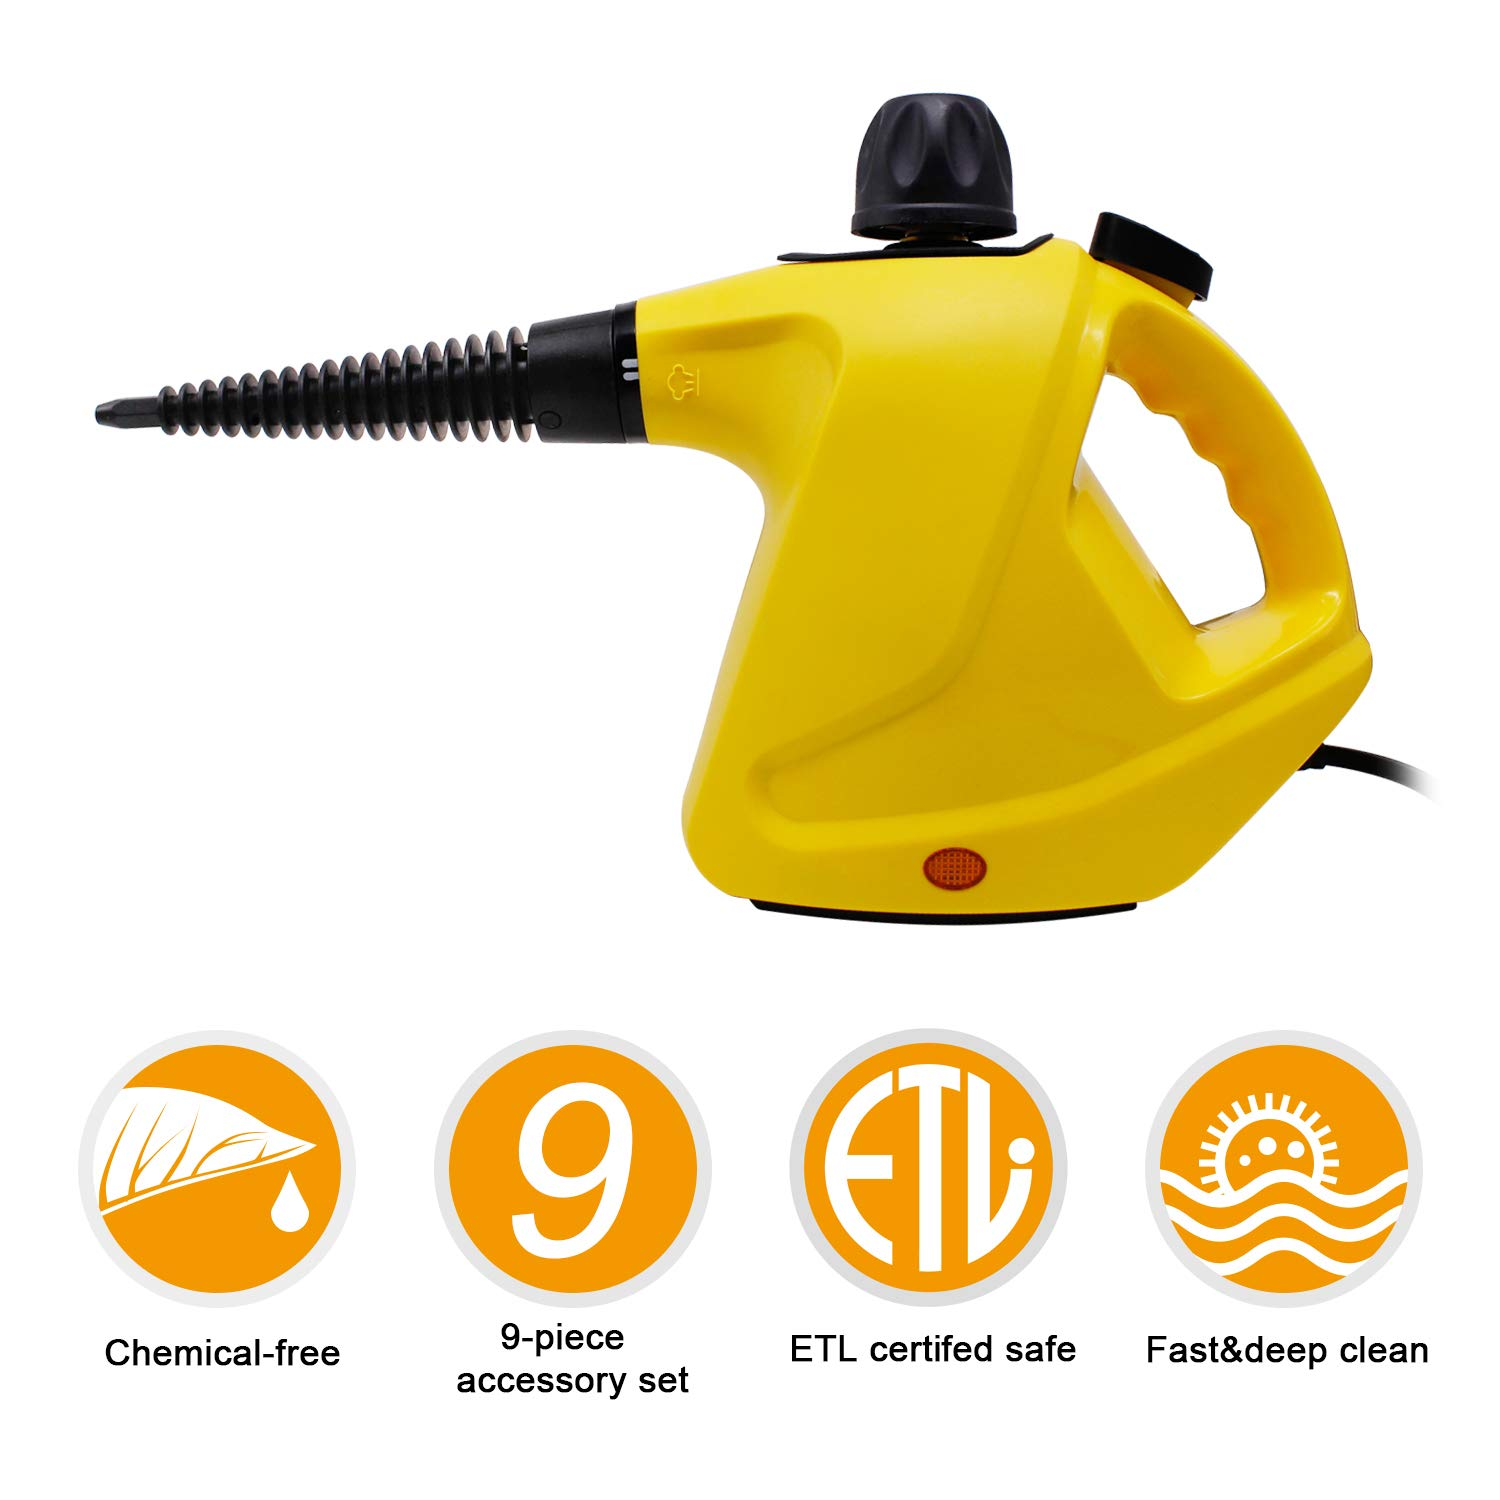 SCYL Color Your Life Handheld Steam Cleaner, Pressurized Steam Cleaner Safety Lock, Powerful Multi-Purpose Steam Cleaner 9 Accessories for Home, Auto, Patio, More,